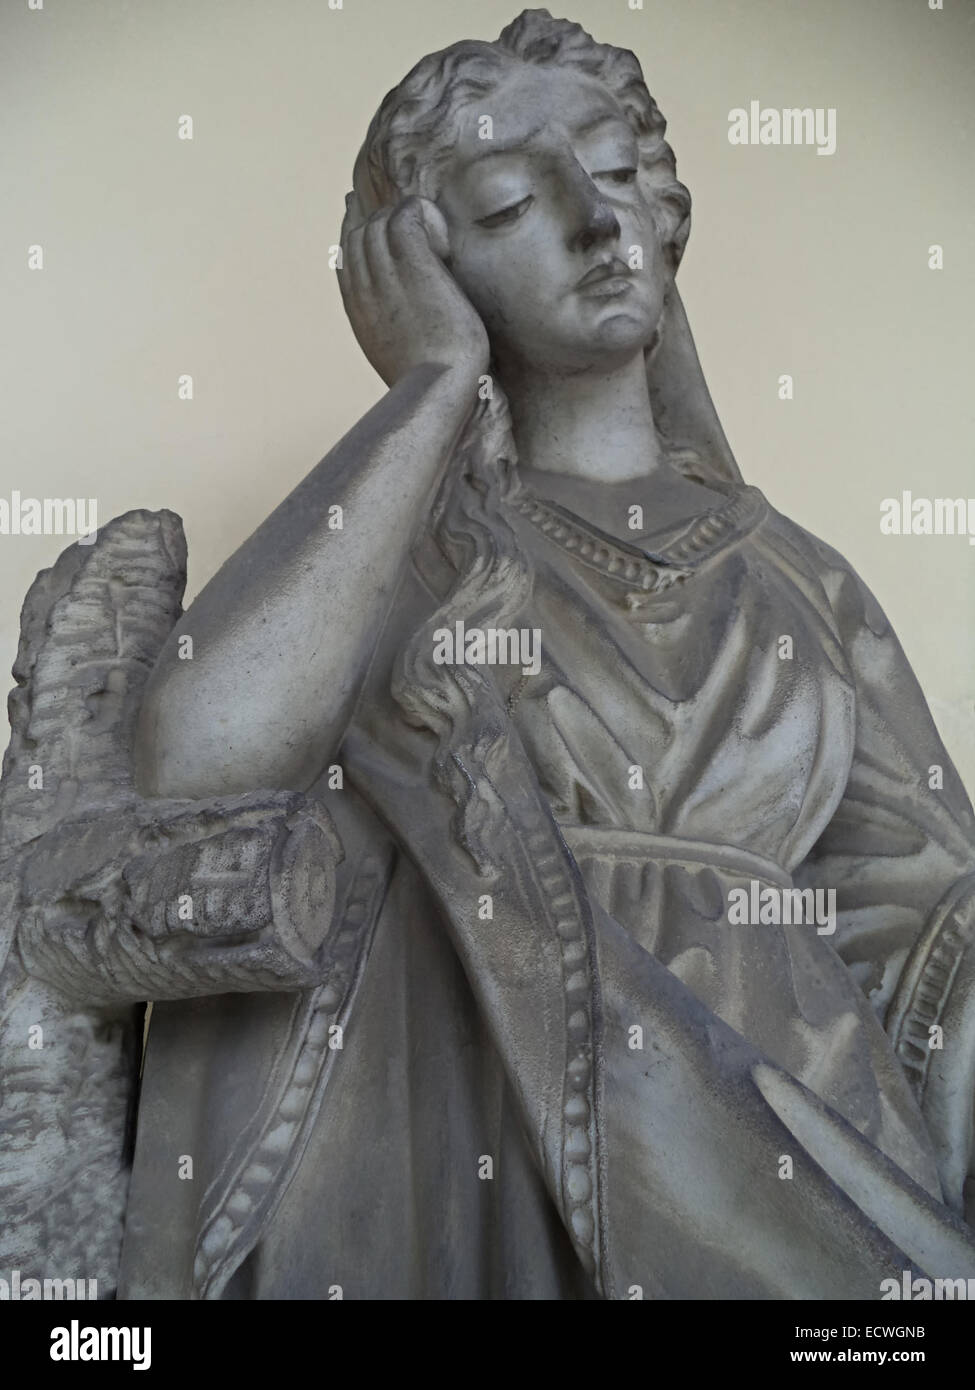 Statue Of Woman On Tomb As A Symbol Of Depression Pain Sorrow And